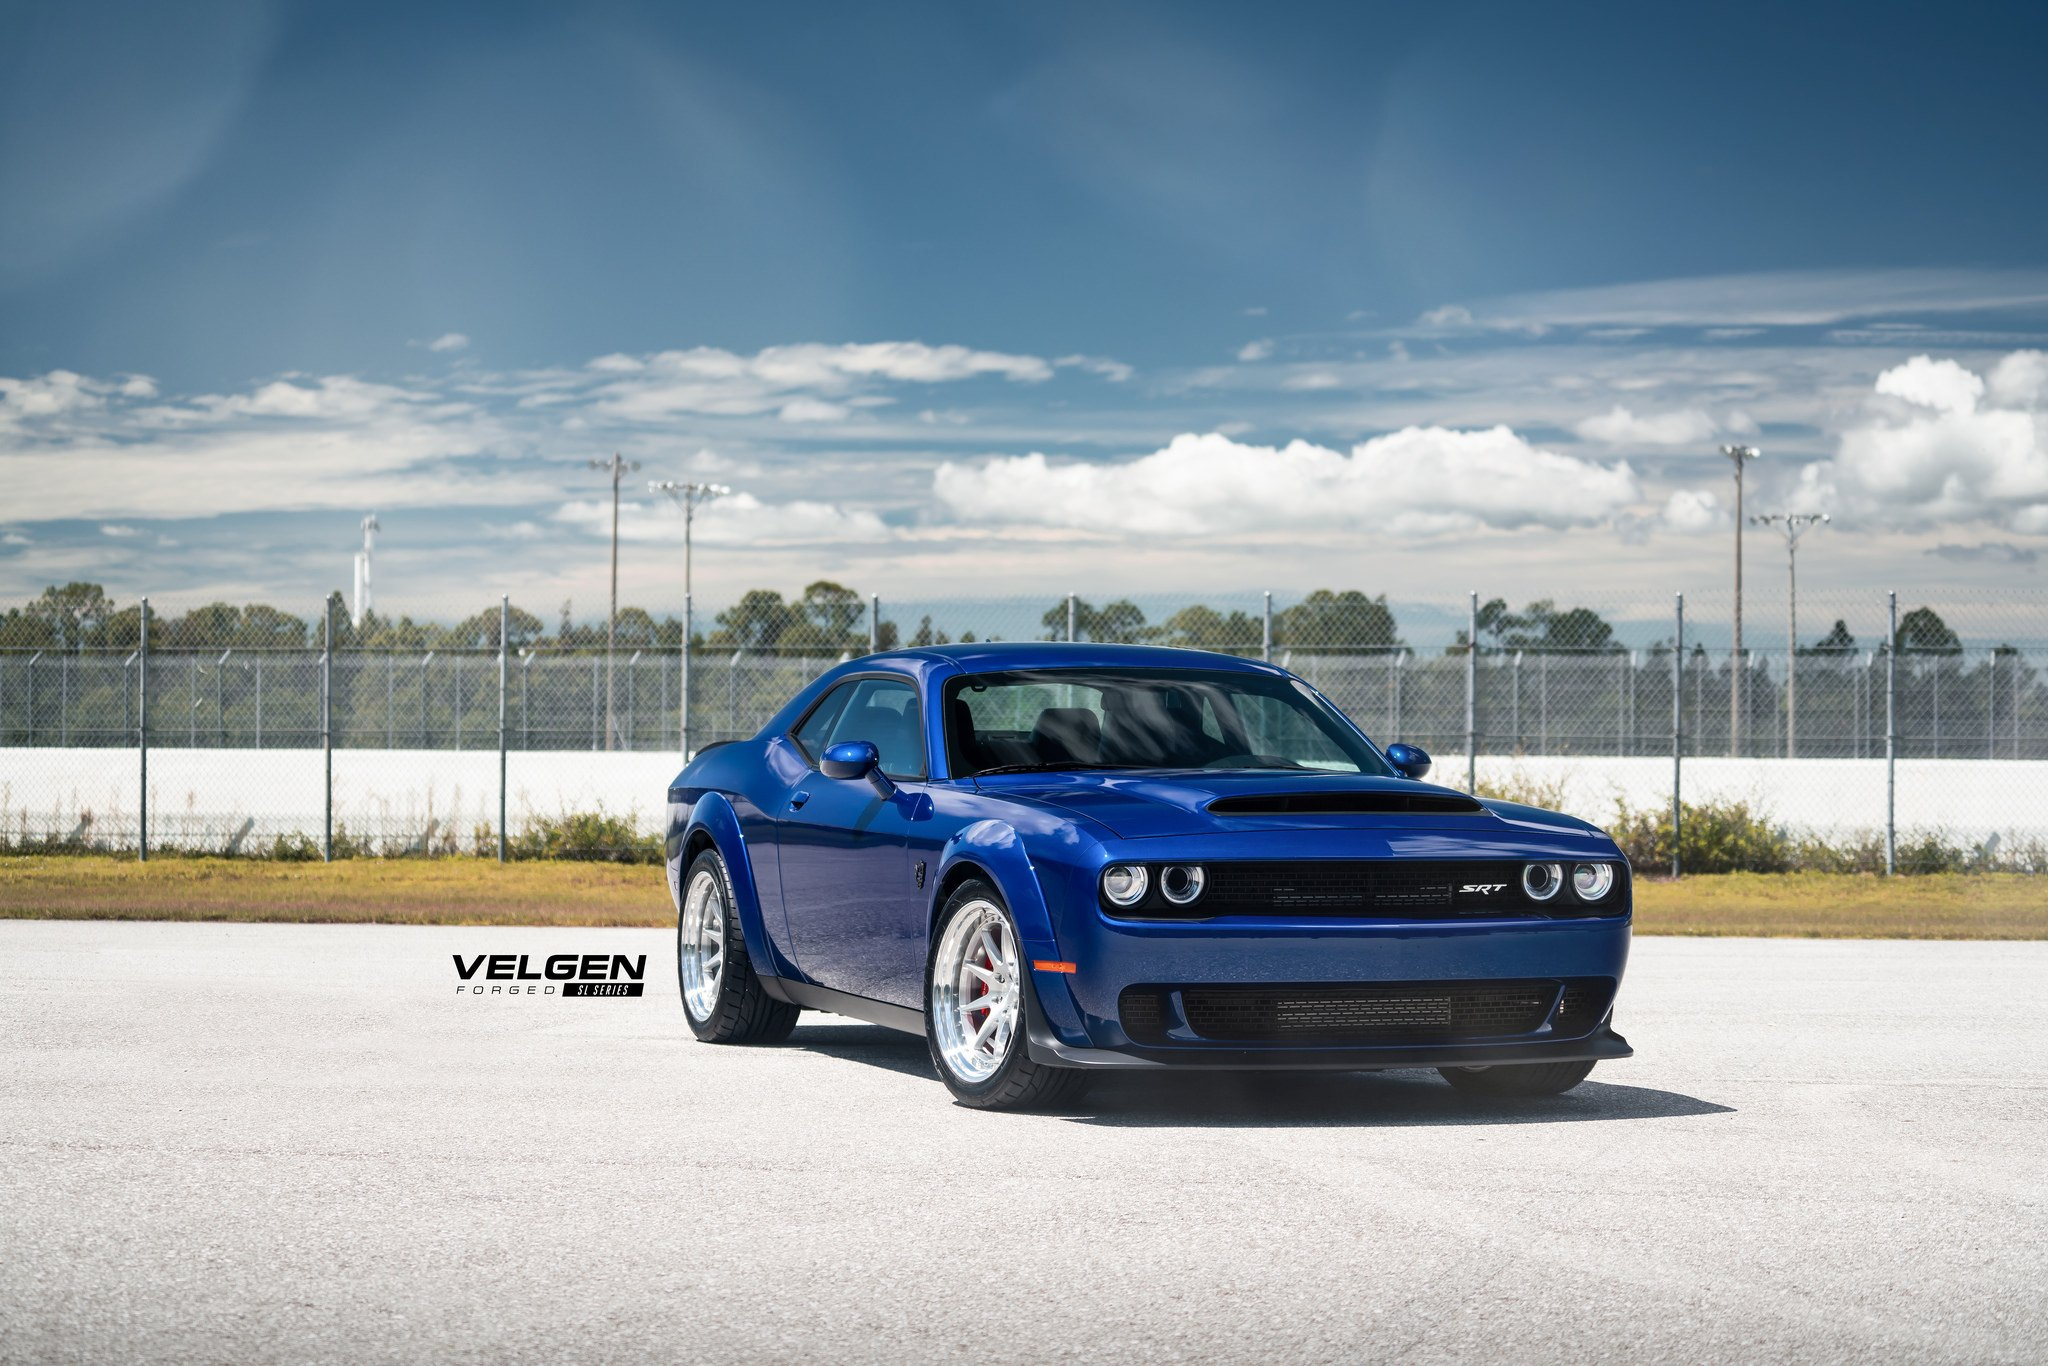 Prominent Custom Wheel Arches And Styling Elements Detected On Dodge Challenger Carid Com Gallery